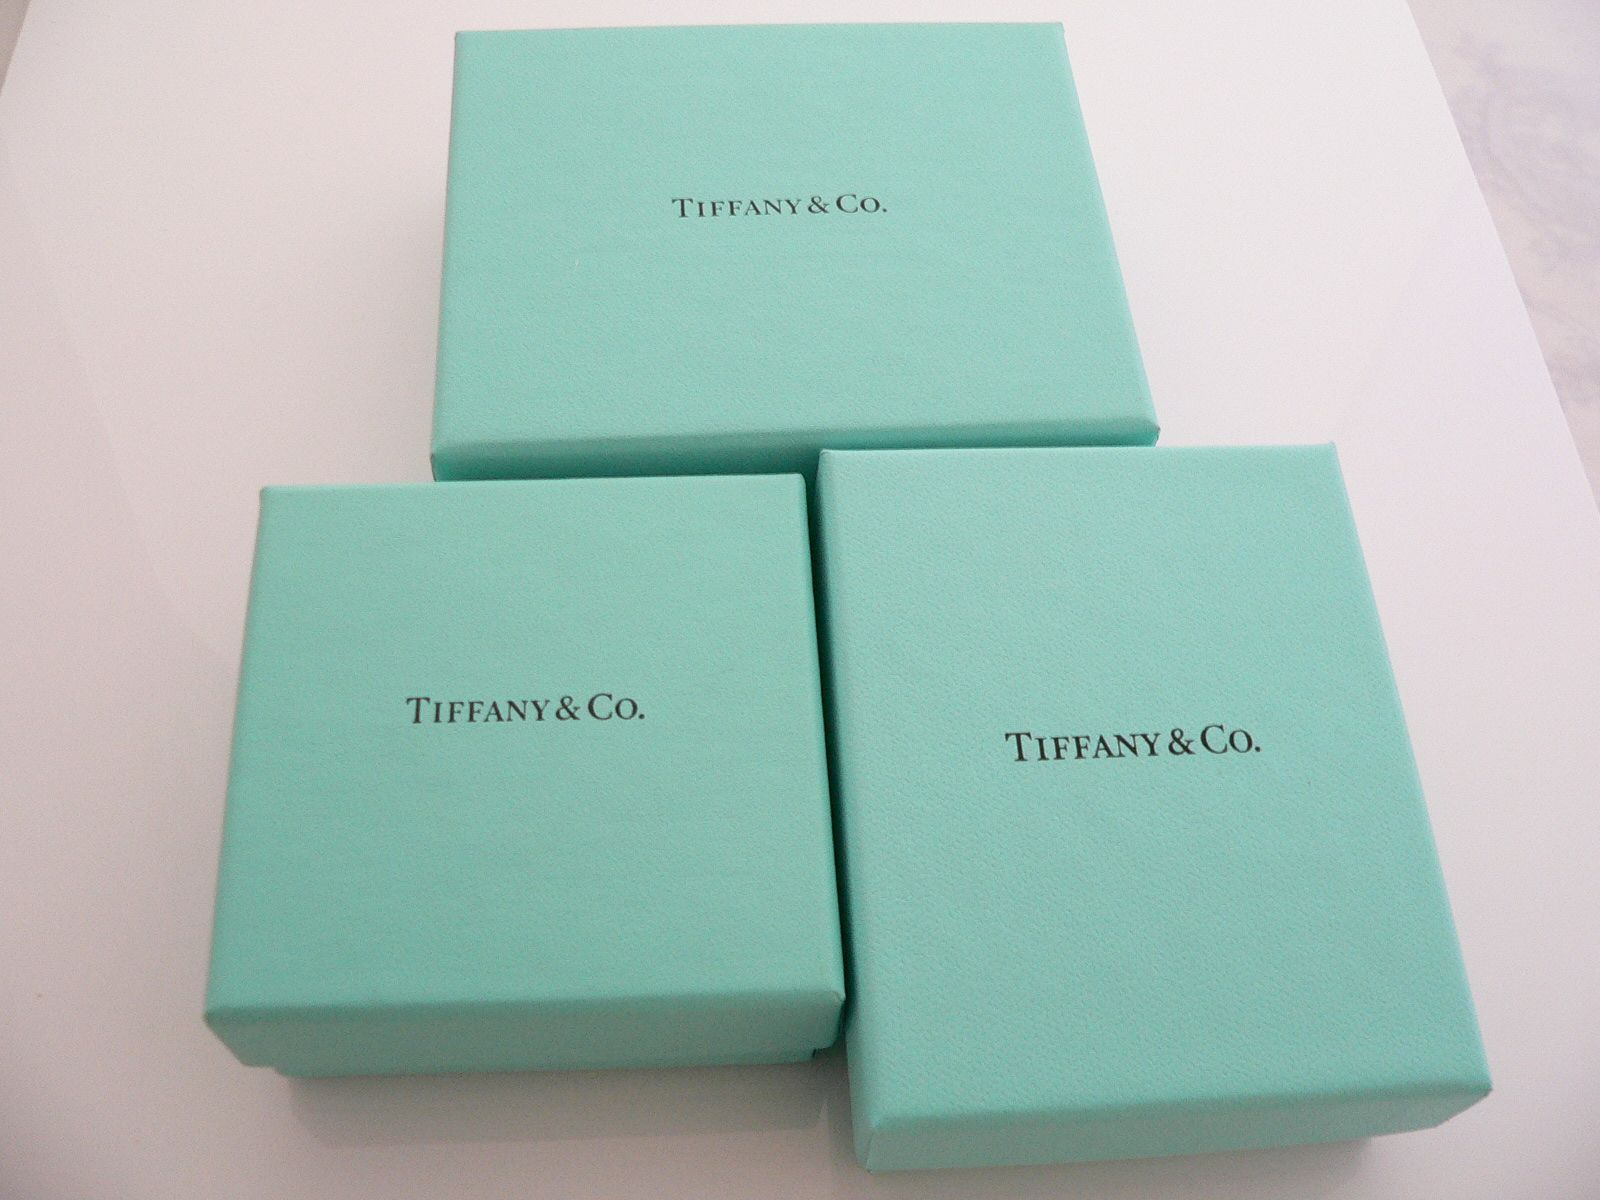 Guide to Buying Authentic Tiffany & Co. (Future Articles)